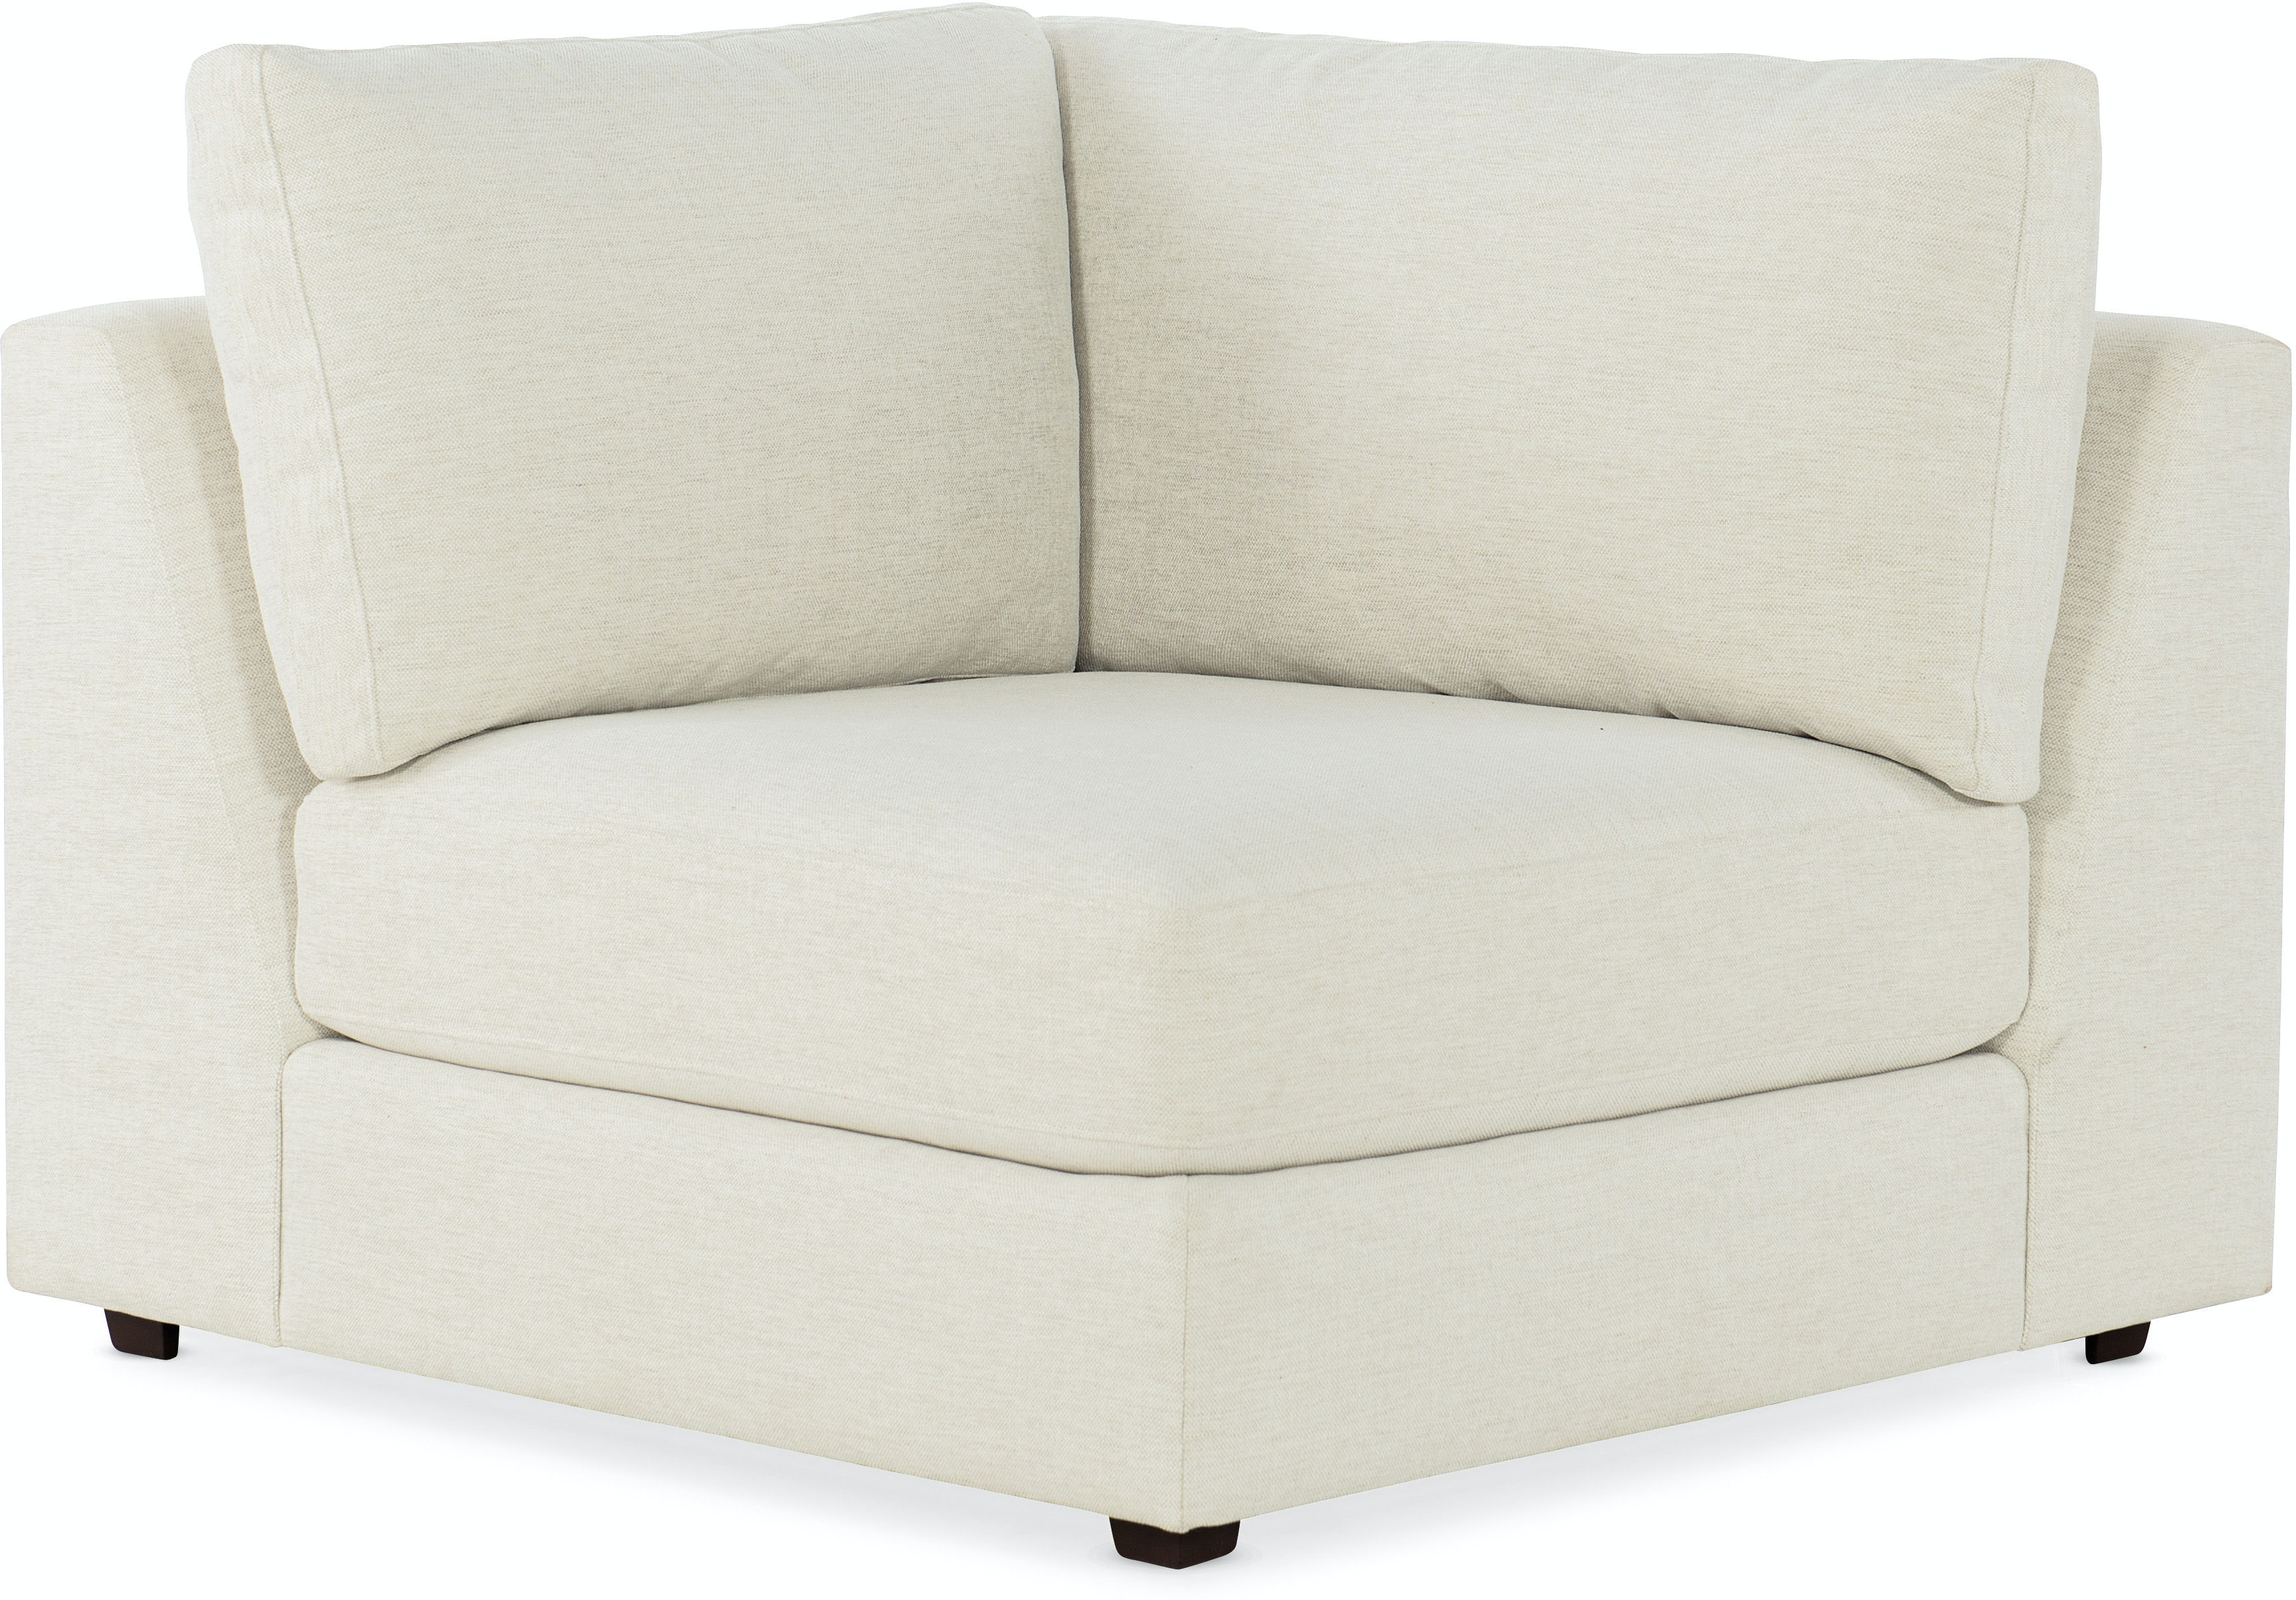 MARQ Living Room Quinton Corner Chair 791-8061